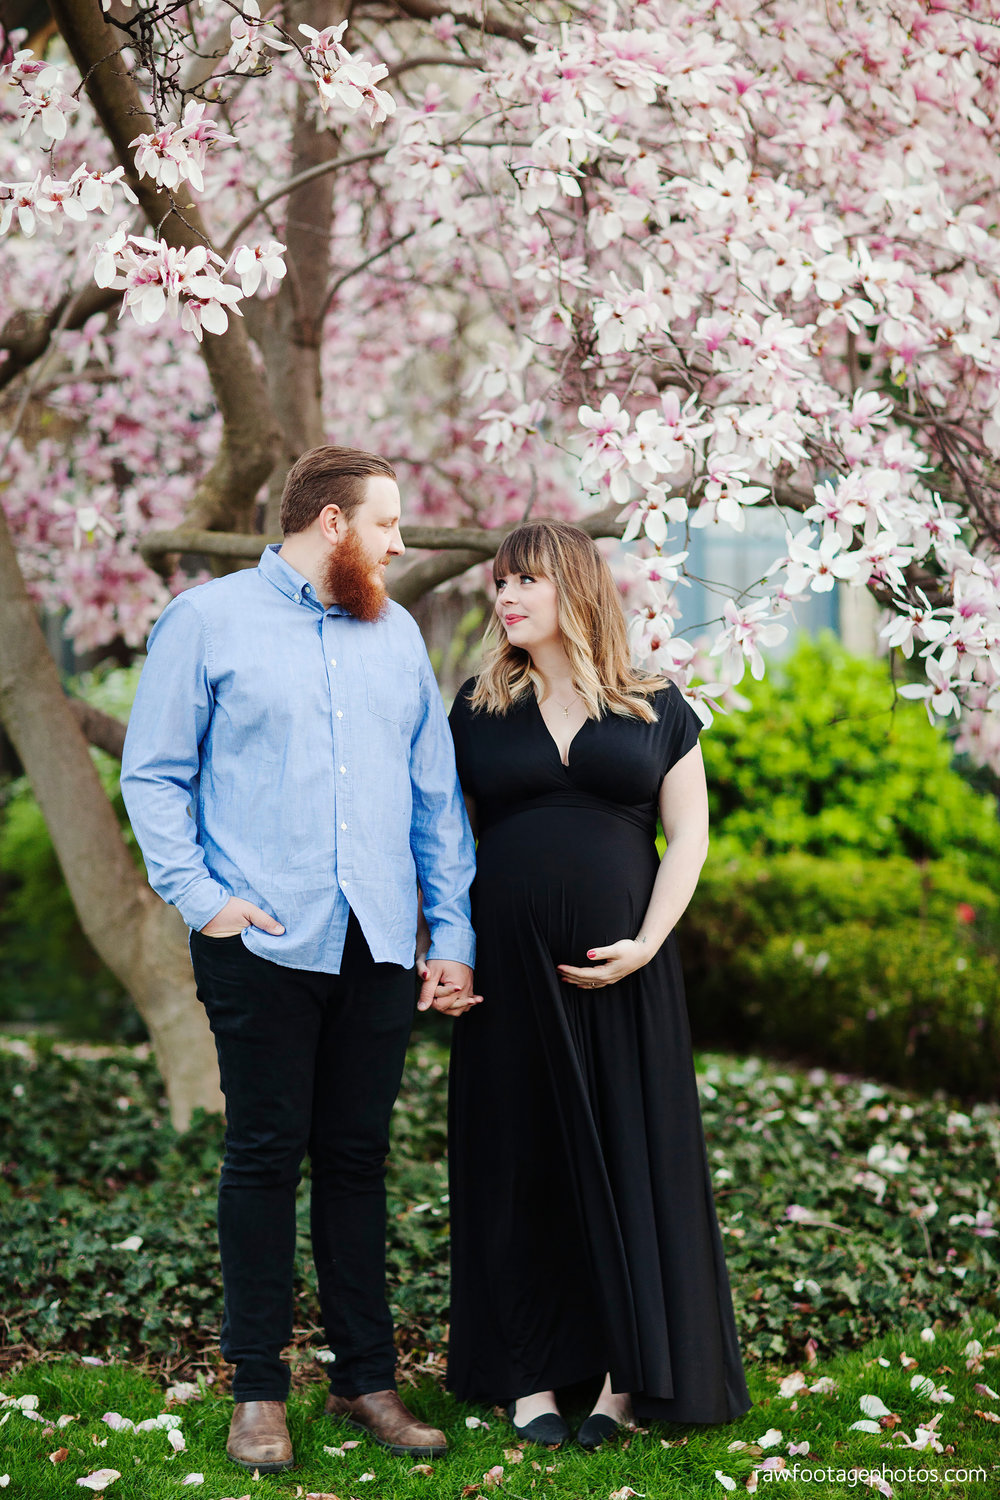 london_ontario_photographer-maternity_session-magnolia_blossoms-magnolia_tree-night_shot-lifestyle_photography-raw_footage_photography004.jpg